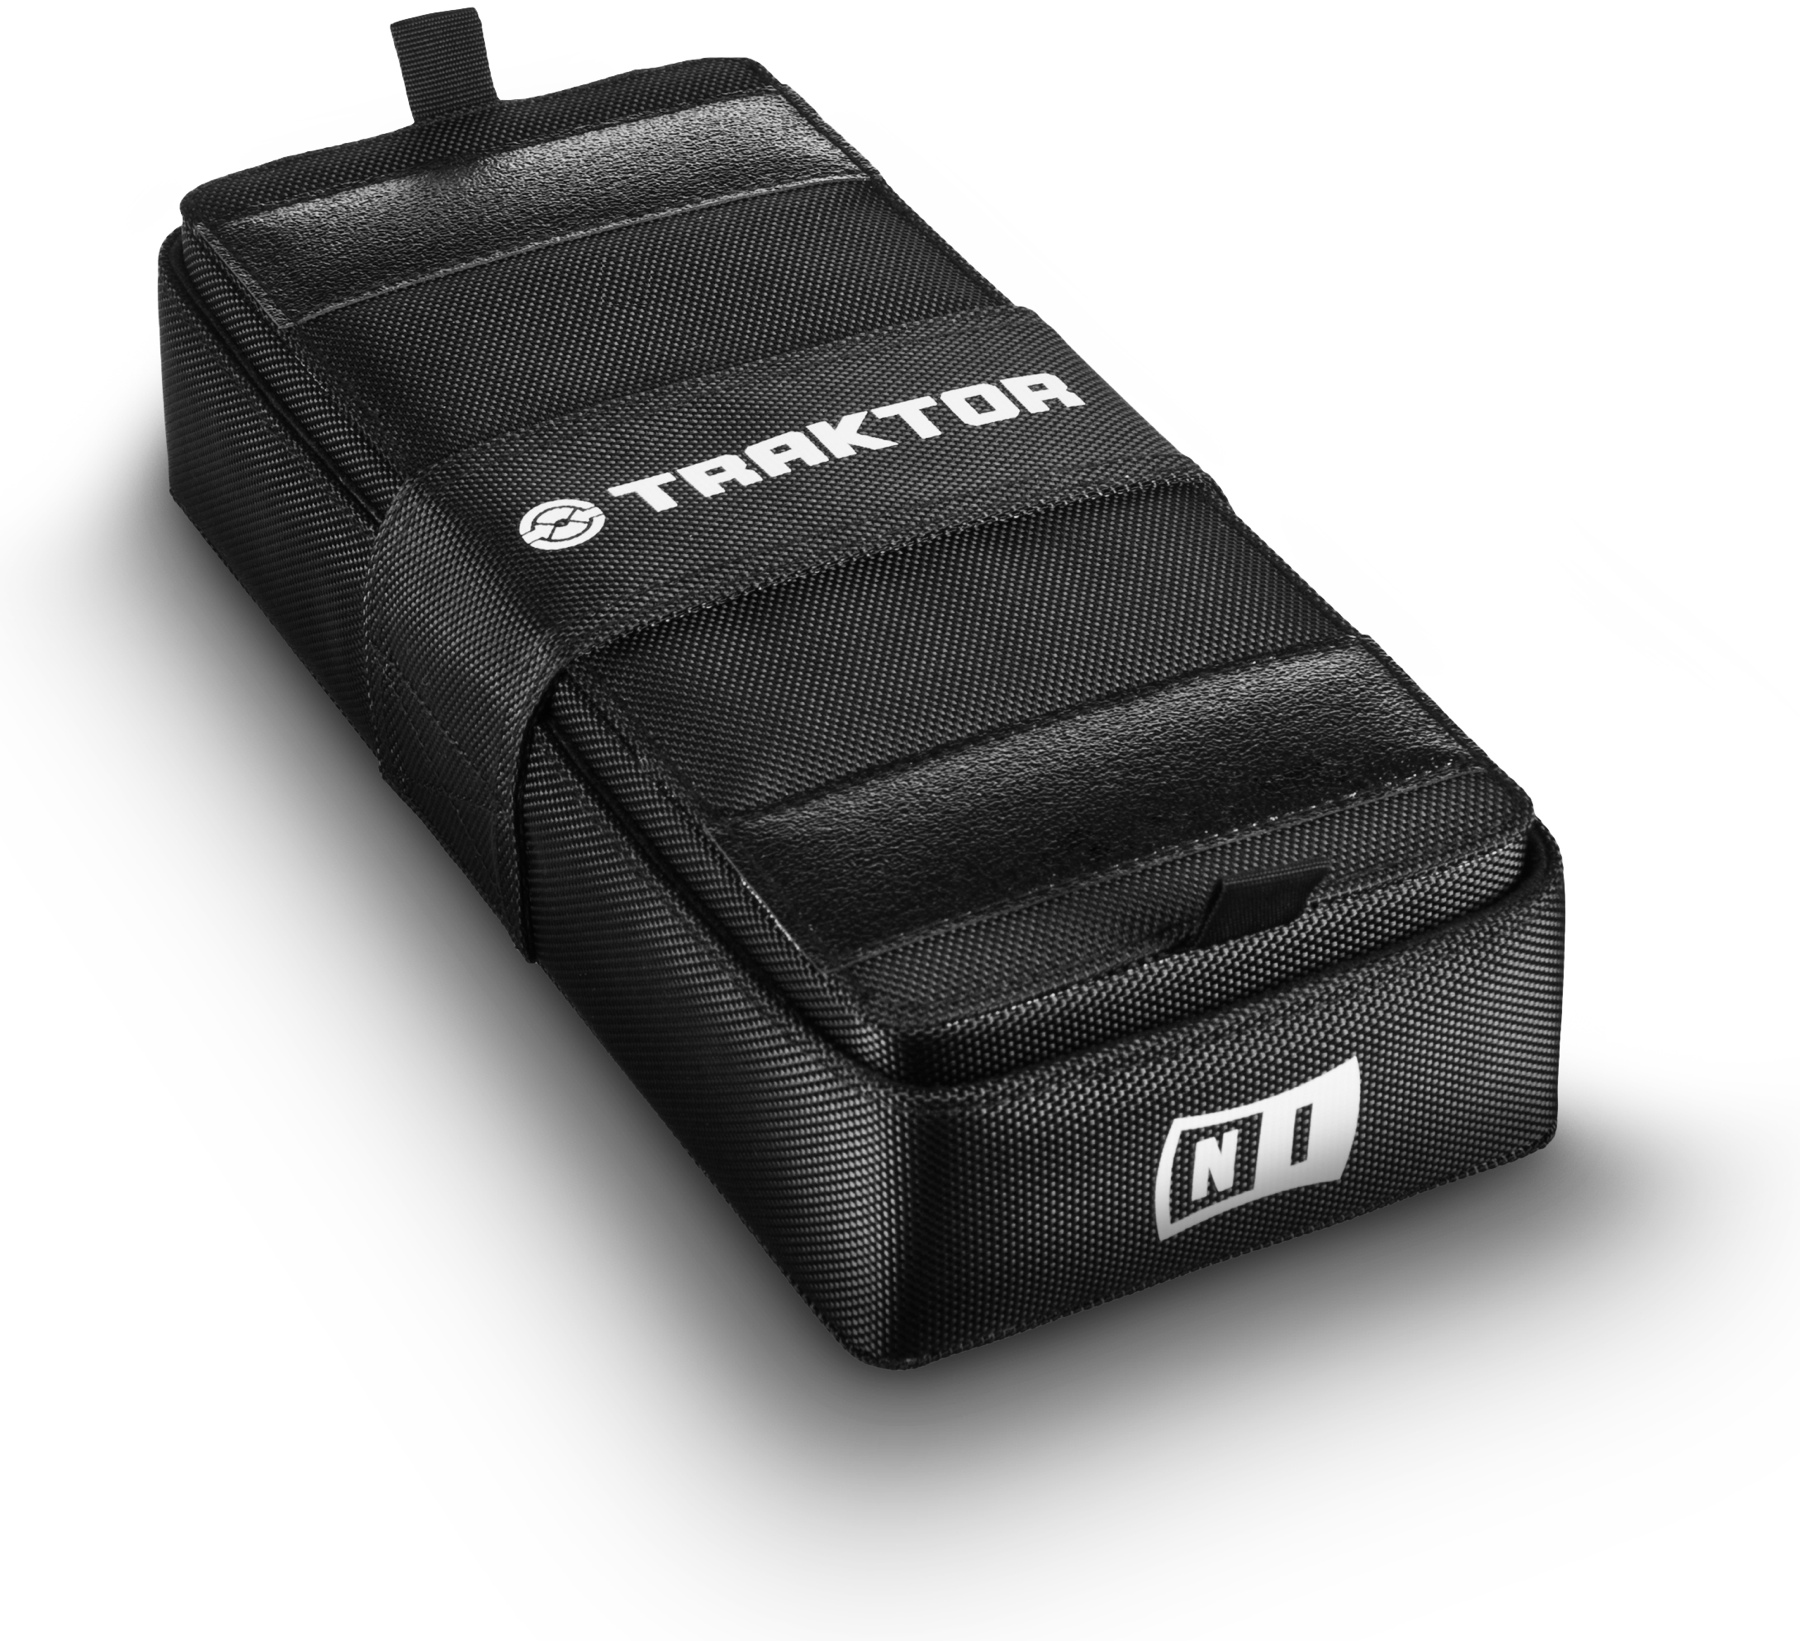 Native Instruments Traktor Kontrol X1 Bag